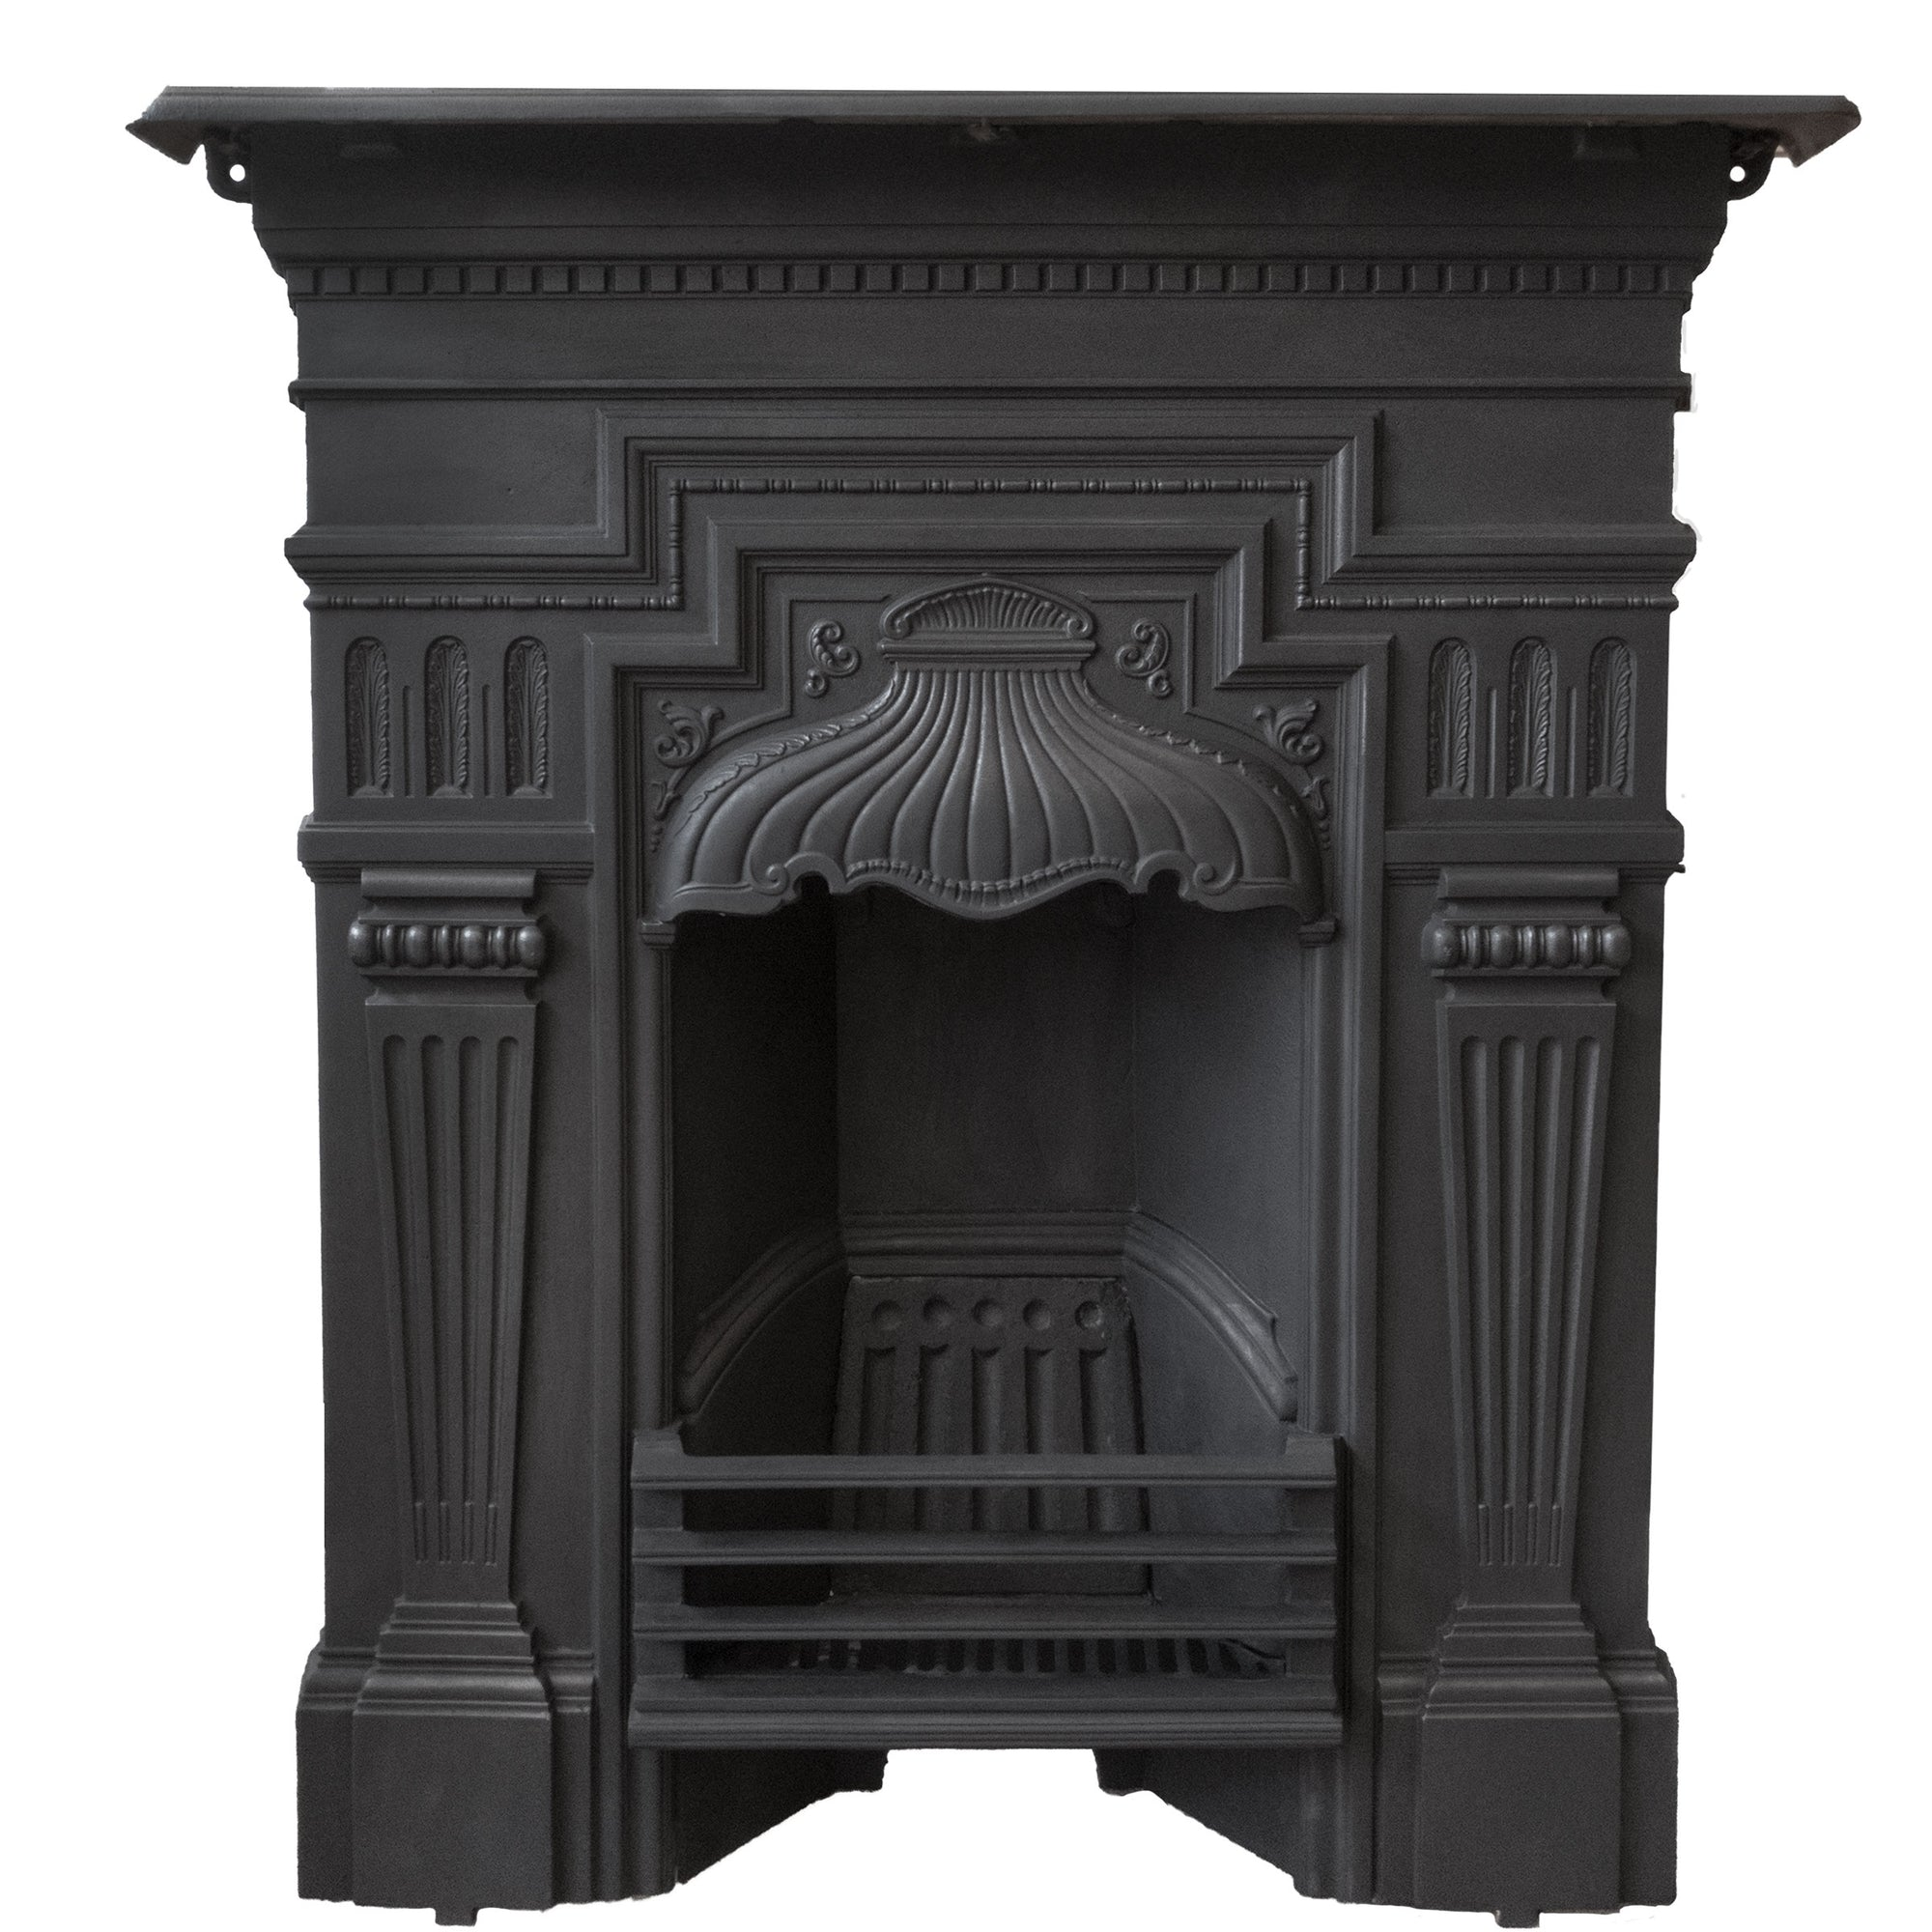 Antique Edwardian Cast Iron Combination Fireplace - The Architectural Forum